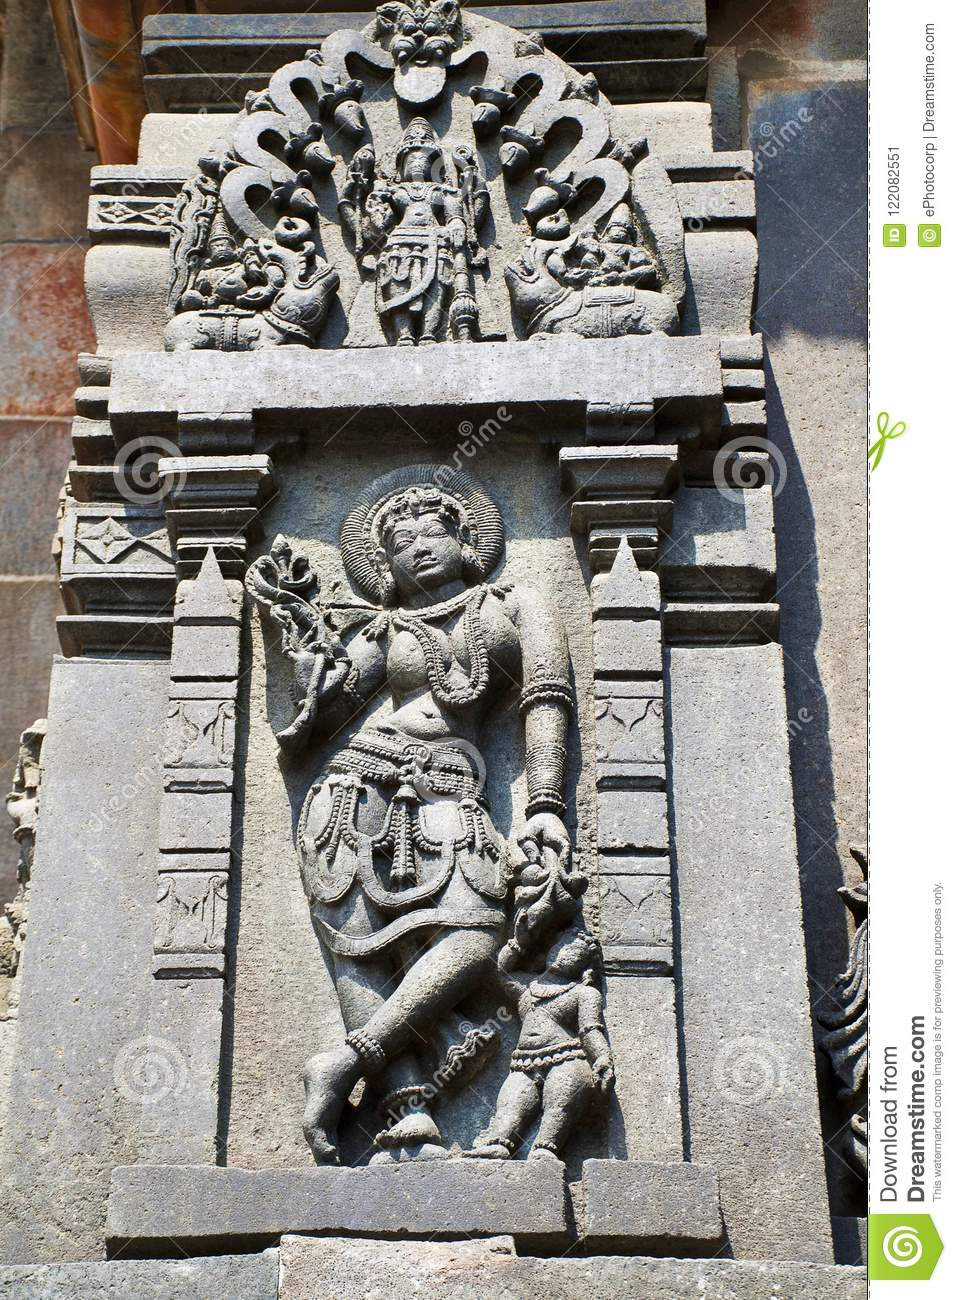 Sculpture of a Sundari, Beatiful Lady, going out with her child. Chennakesava temple, Belur, Karnataka.